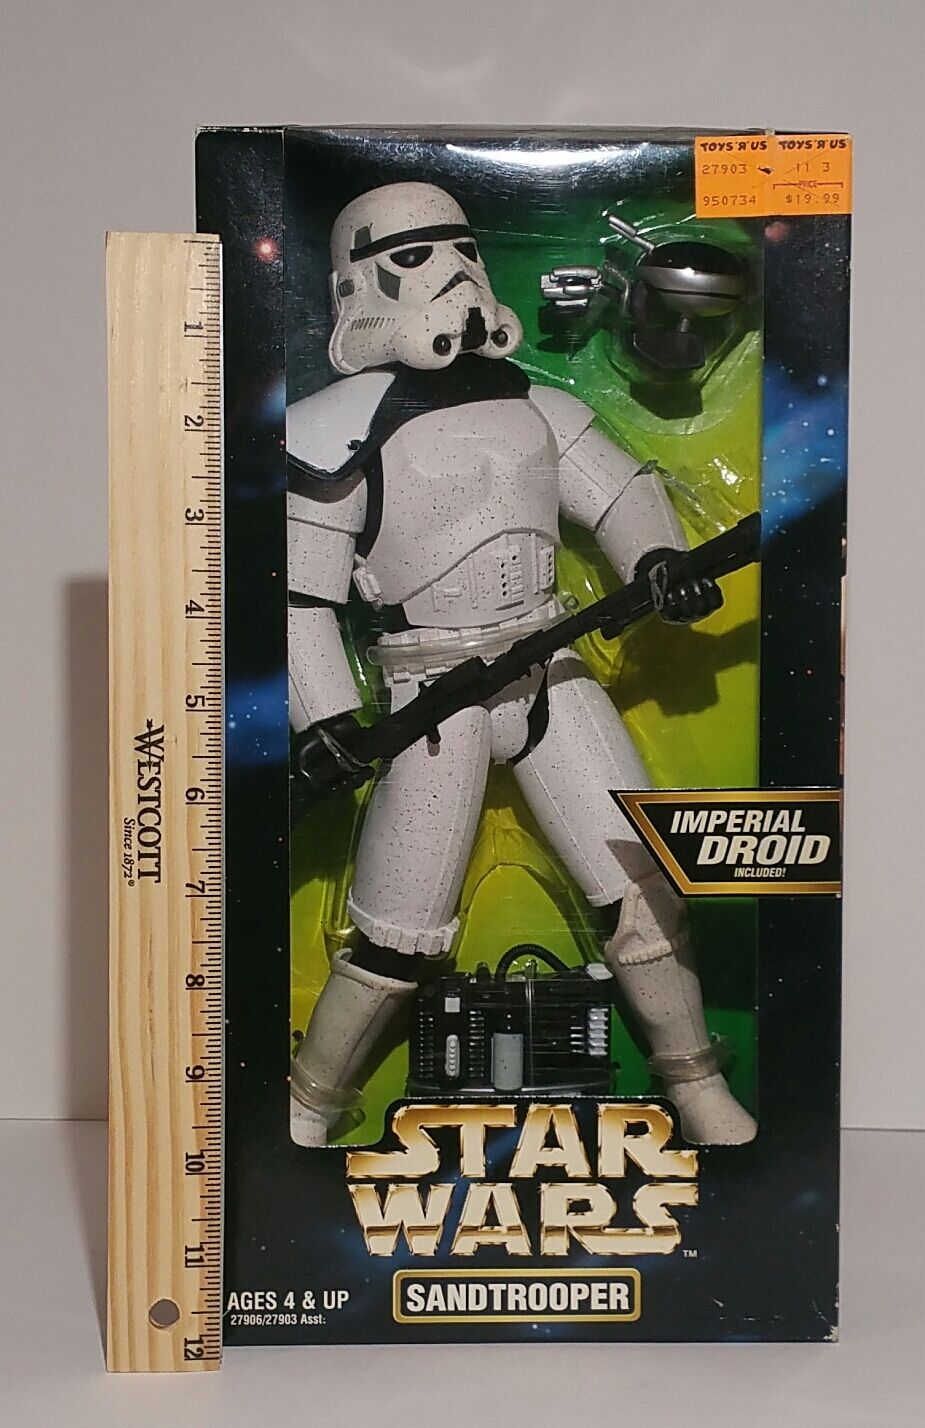 Star Wars Sandtrooper Action Collection   1 6 figure 1997 MIB